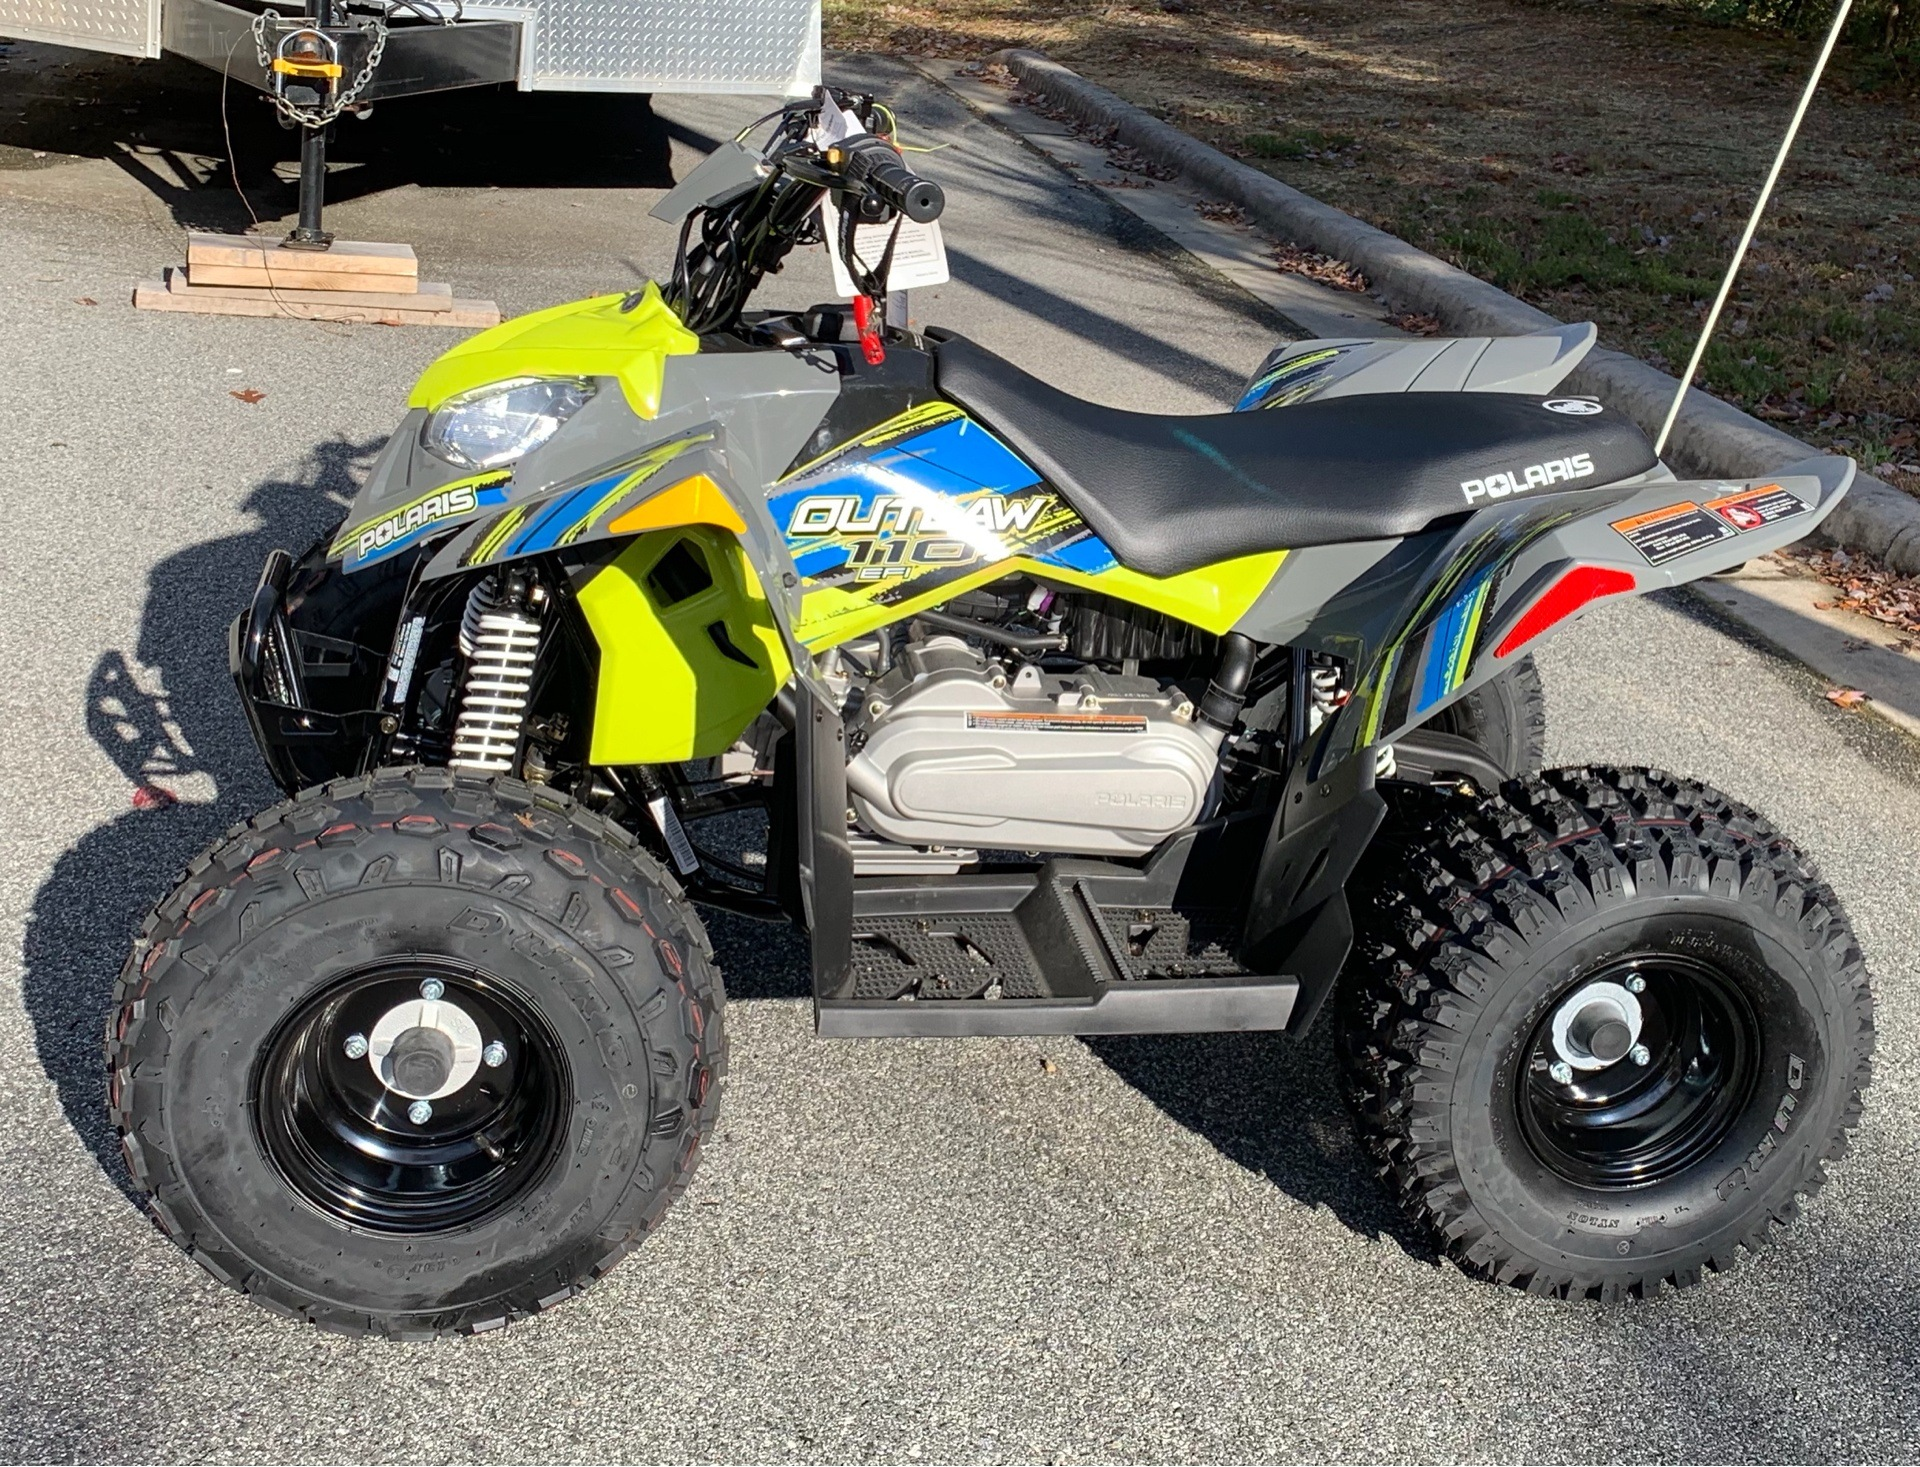 2019 Polaris Outlaw 110 in High Point, North Carolina - Photo 7